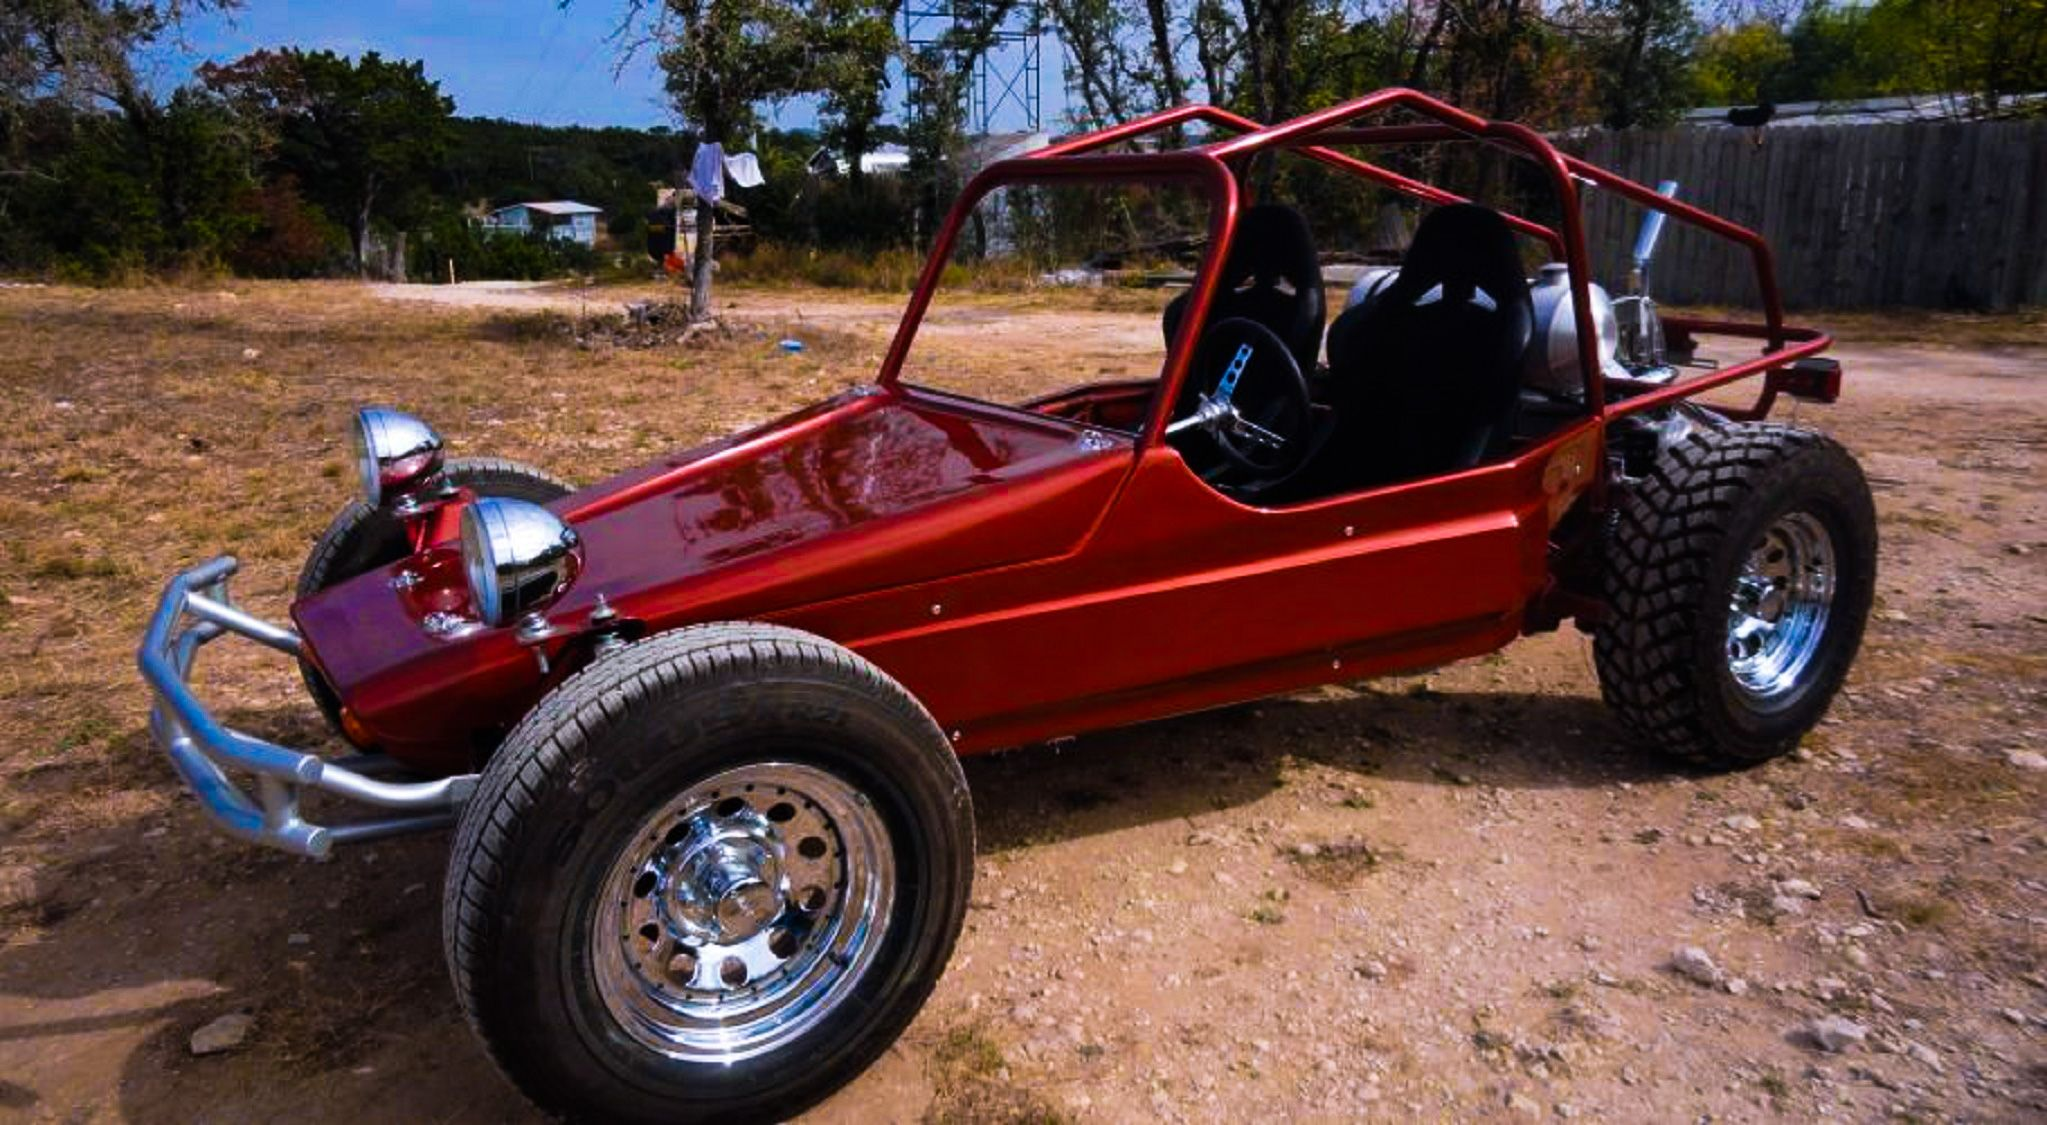 Pin by Matty D on Vehicles | Sand rail, Beach buggy, Antique